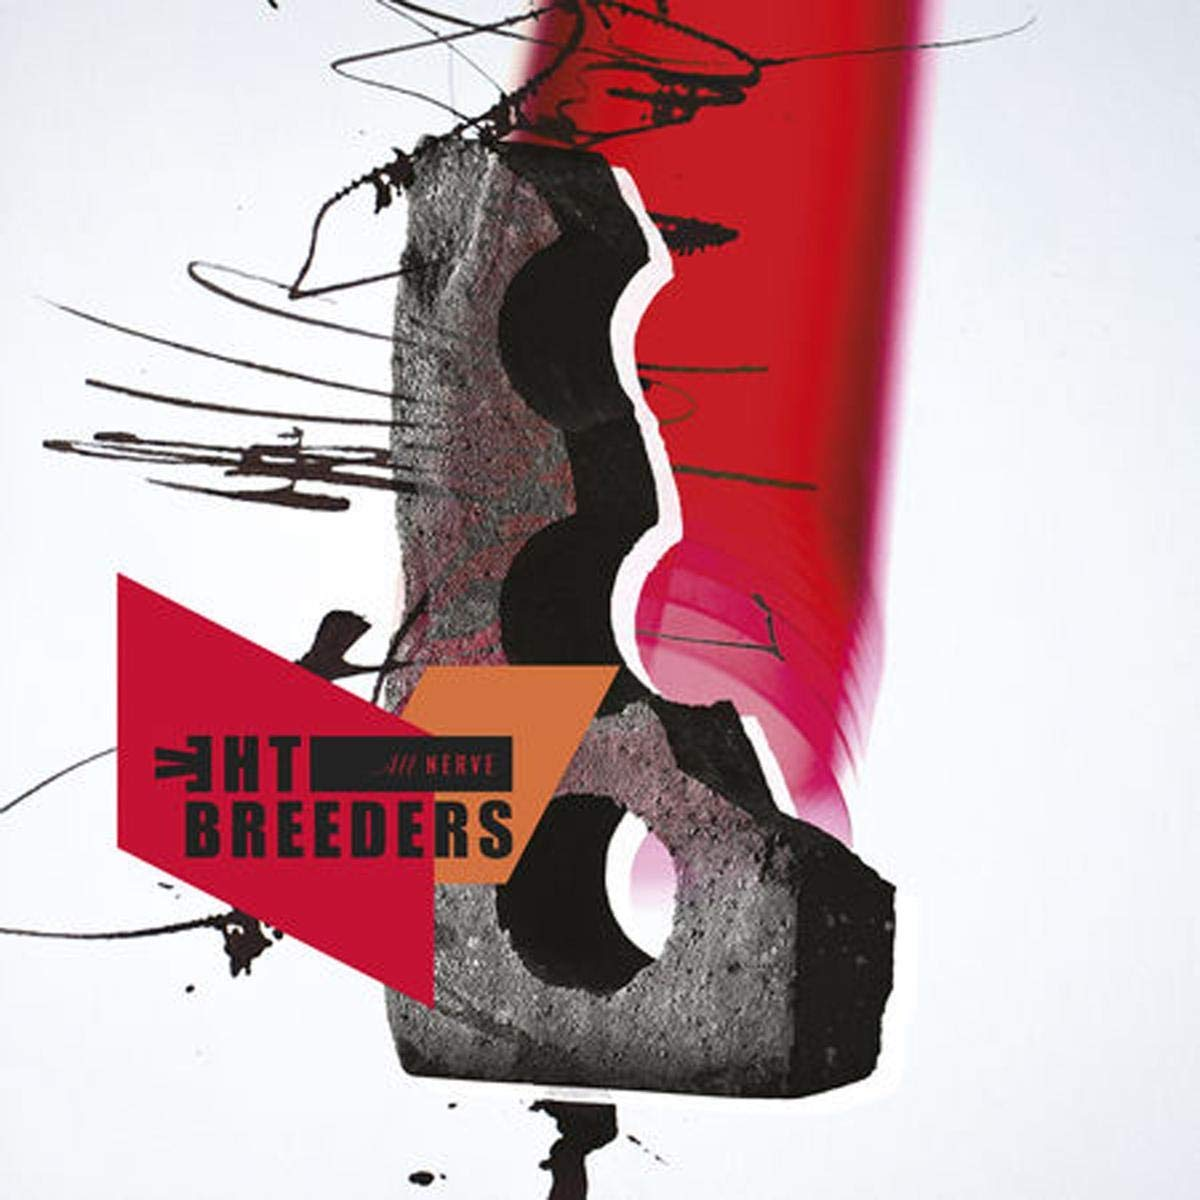 Breeders, The/All Nerve (Orange Vinyl) [LP]